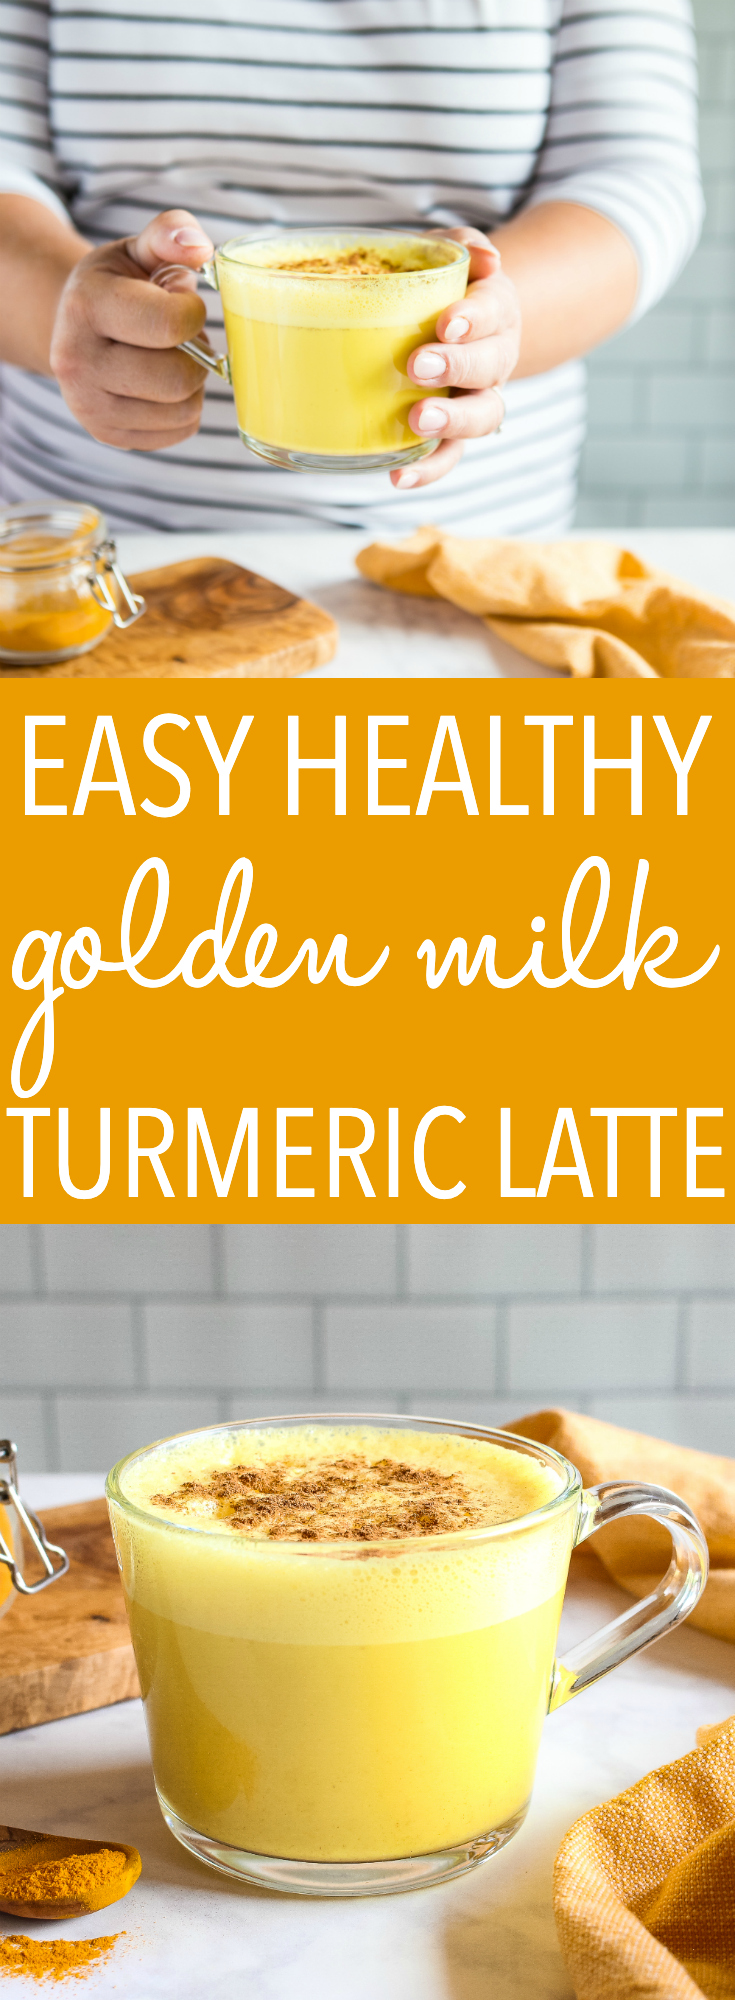 This recipe for Golden Milk Latte with Turmeric is the perfect warm drink with antioxidants. Make it with milk & honey, or low carb and vegan! Recipe from thebusybaker.ca! #turmeric #turmericlatte #goldenmilk #hotdrink #lowcarb #vegan #healthylifestyle via @busybakerblog